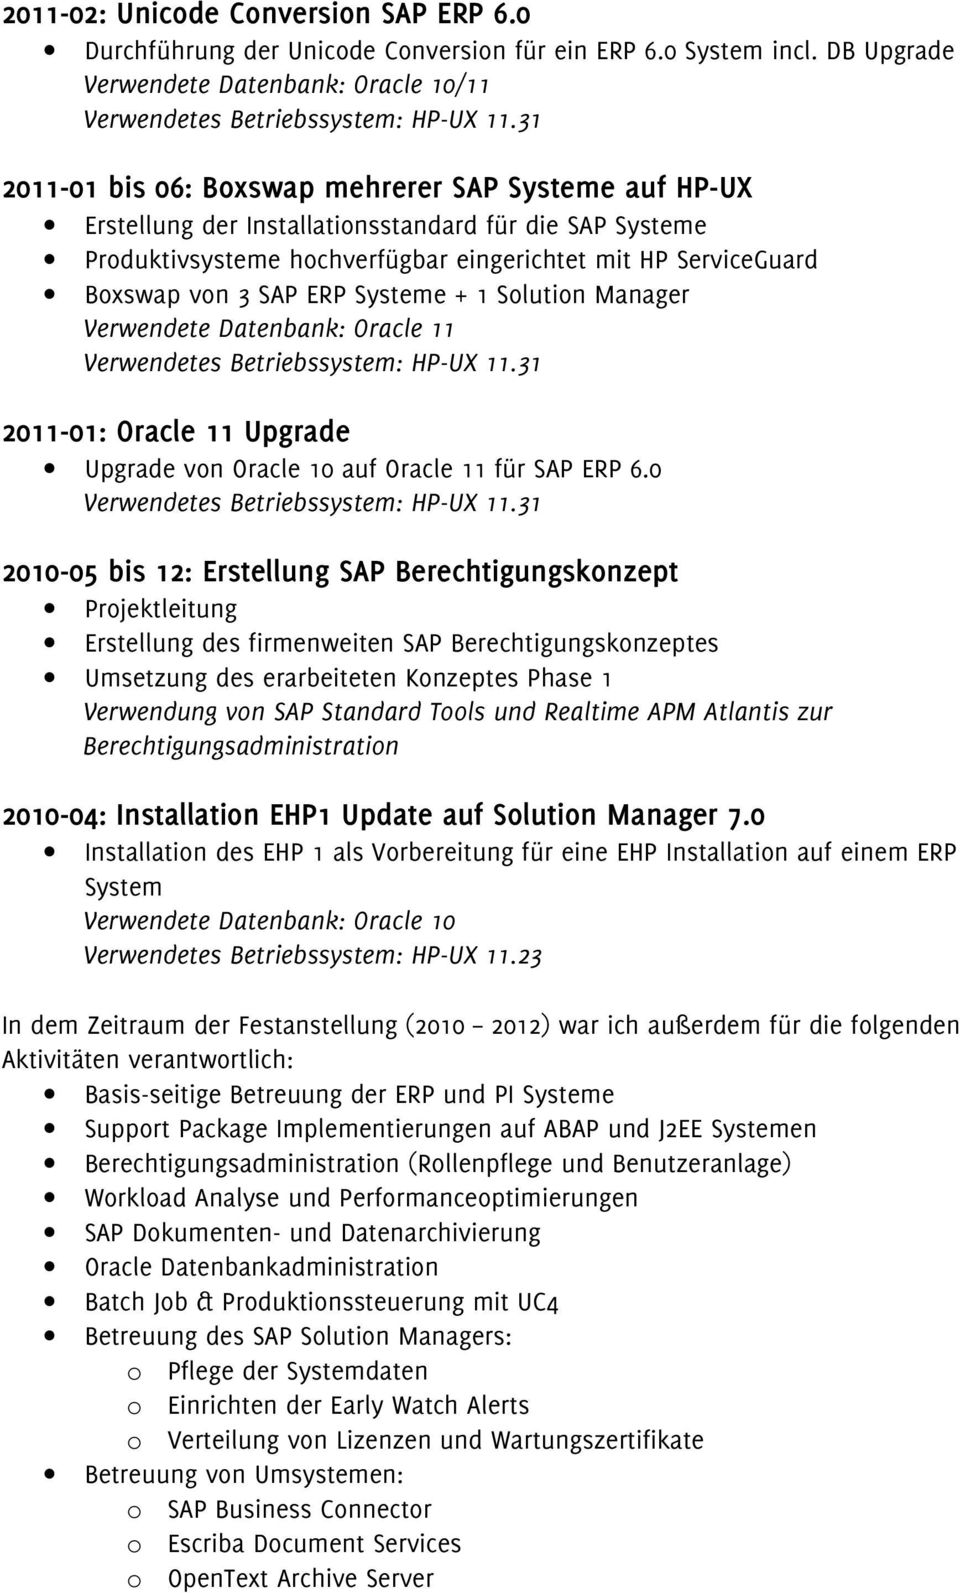 eingerichtet mit HP ServiceGuard Boxswap von 3 SAP ERP Systeme + 1 Solution Manager 2011-01: Oracle 11 Upgrade Upgrade von Oracle 10 auf Oracle 11 für SAP ERP 6.